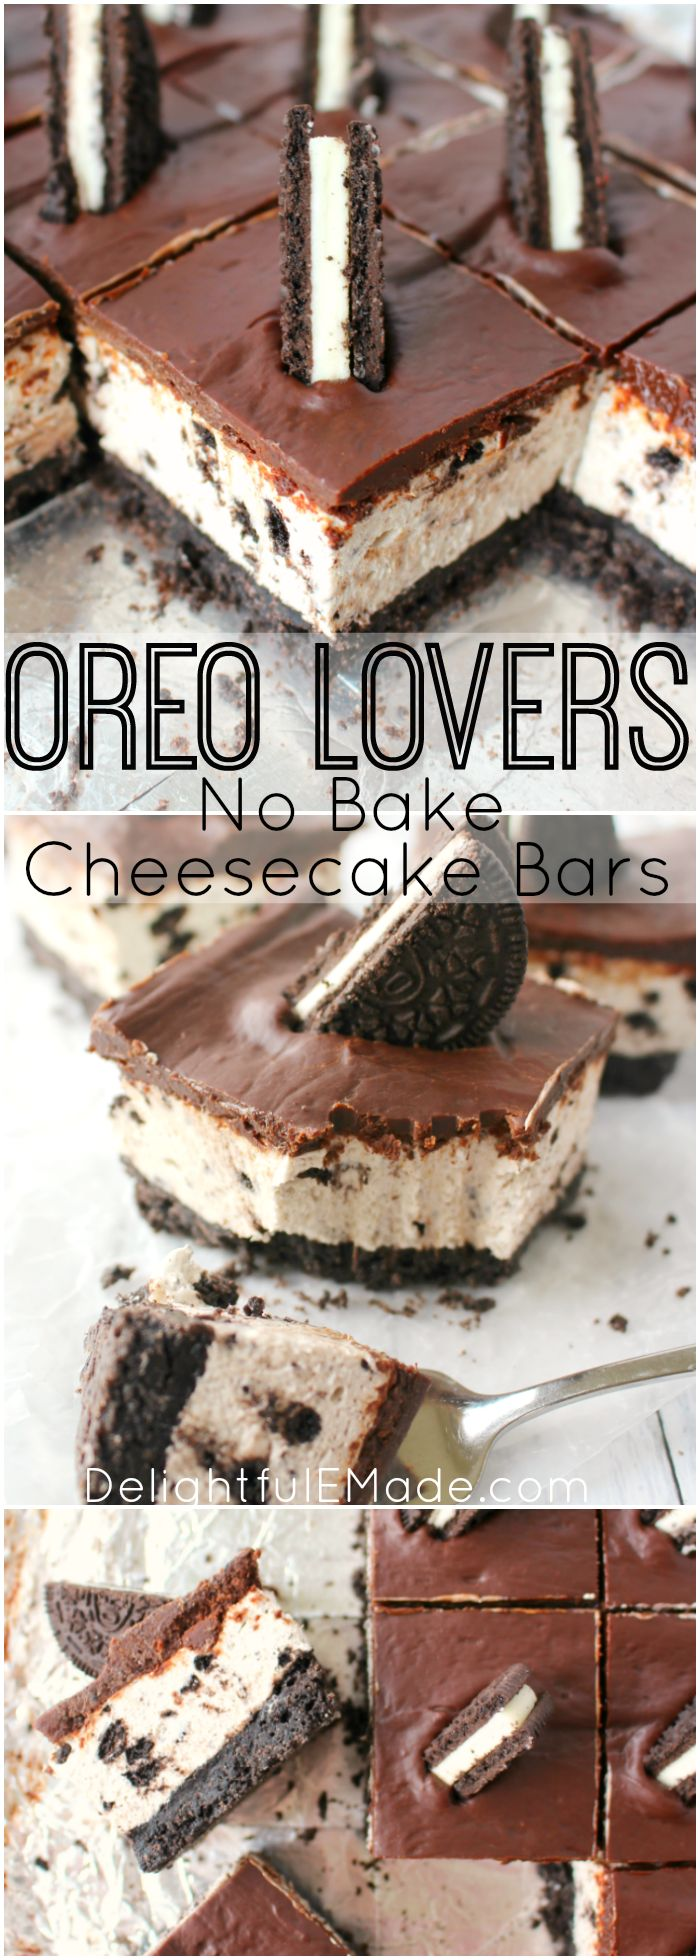 Deser williams pictures to pin on pinterest - The Ultimate Dessert For Anyone That Loves Oreo Cookies A Thick Oreo Crust Creamy